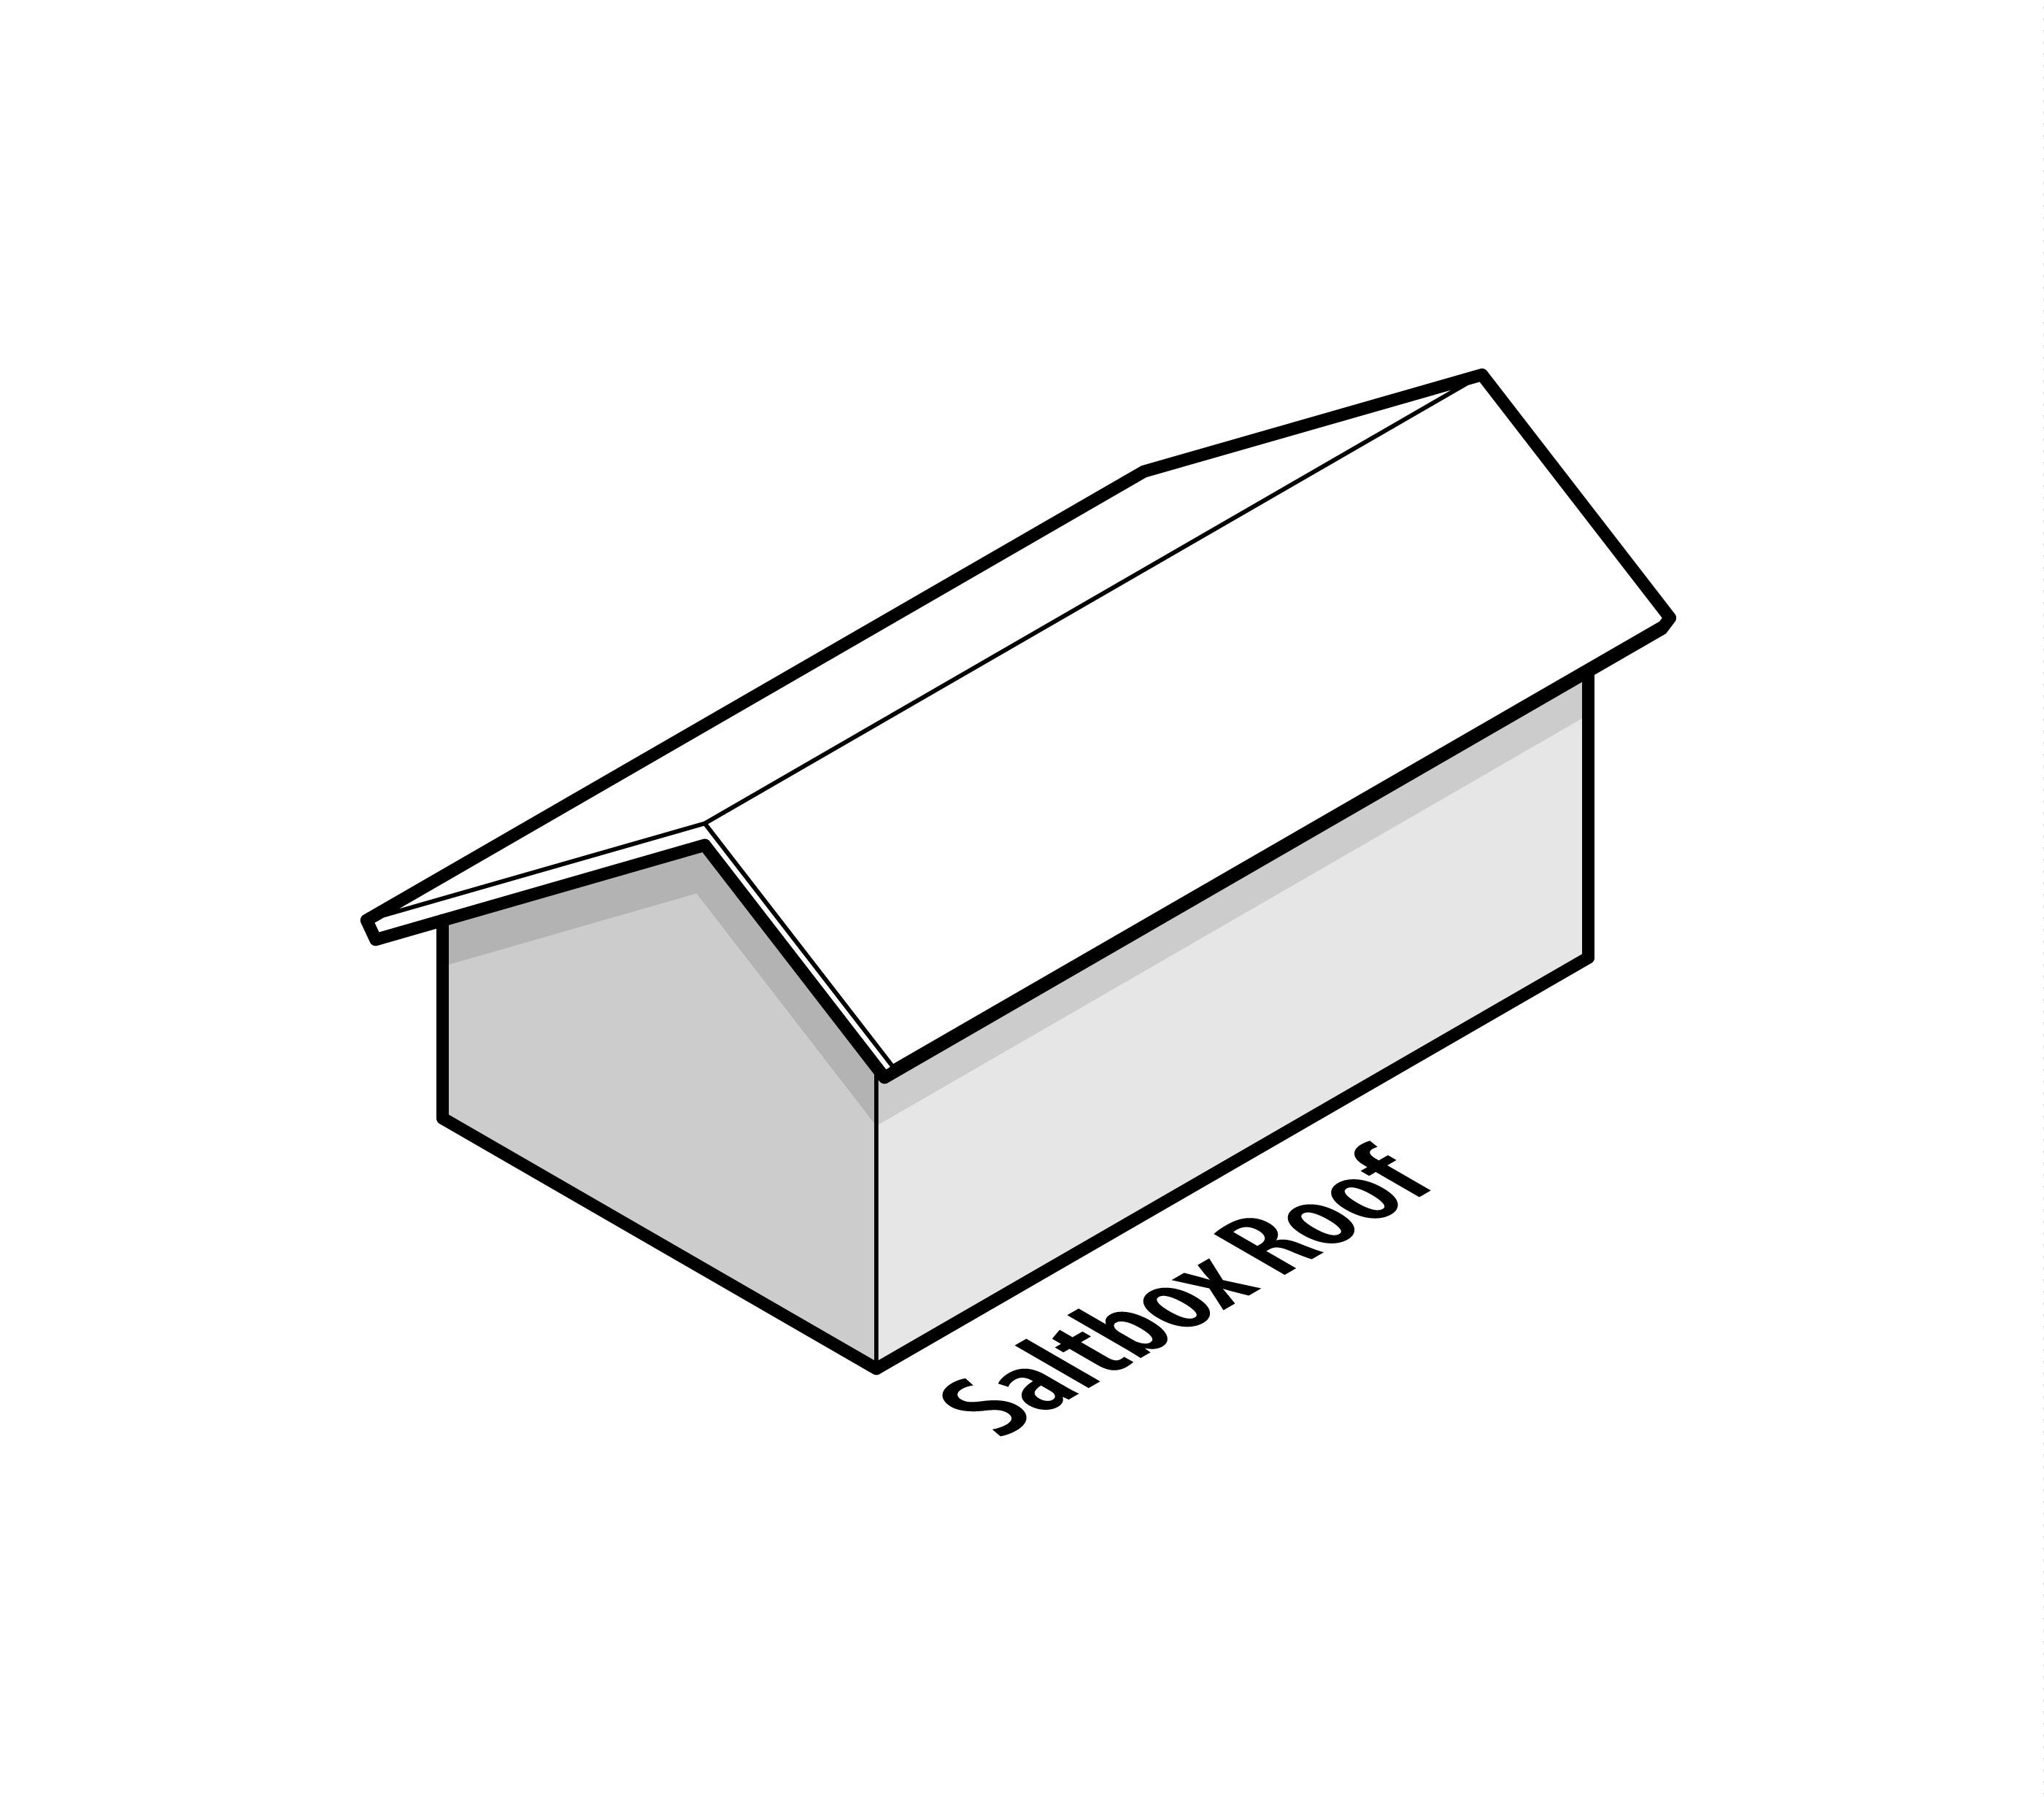 36 Types Of Roofs Styles For Houses Illustrated Roof Design Examples Roof Design Roofing Corrugated Plastic Roofing